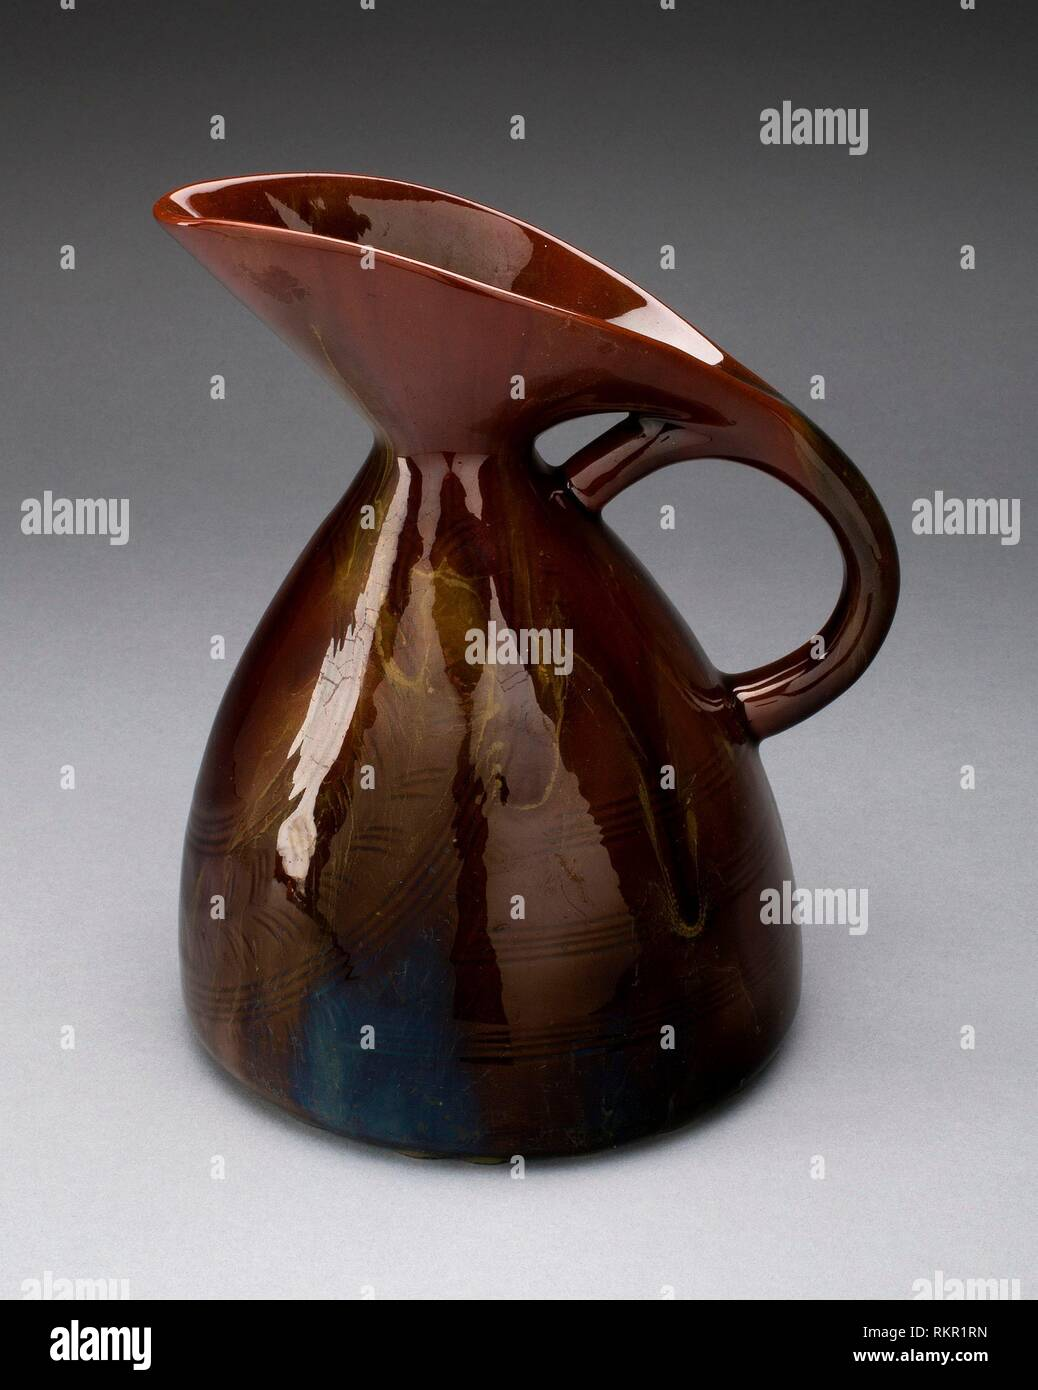 Pitcher - 1880 - Designed by Christopher Dresser, English, born Scotland, 1834-1904 Manufactured by Linthorpe Art Pottery English, Yorkshire, - Stock Image